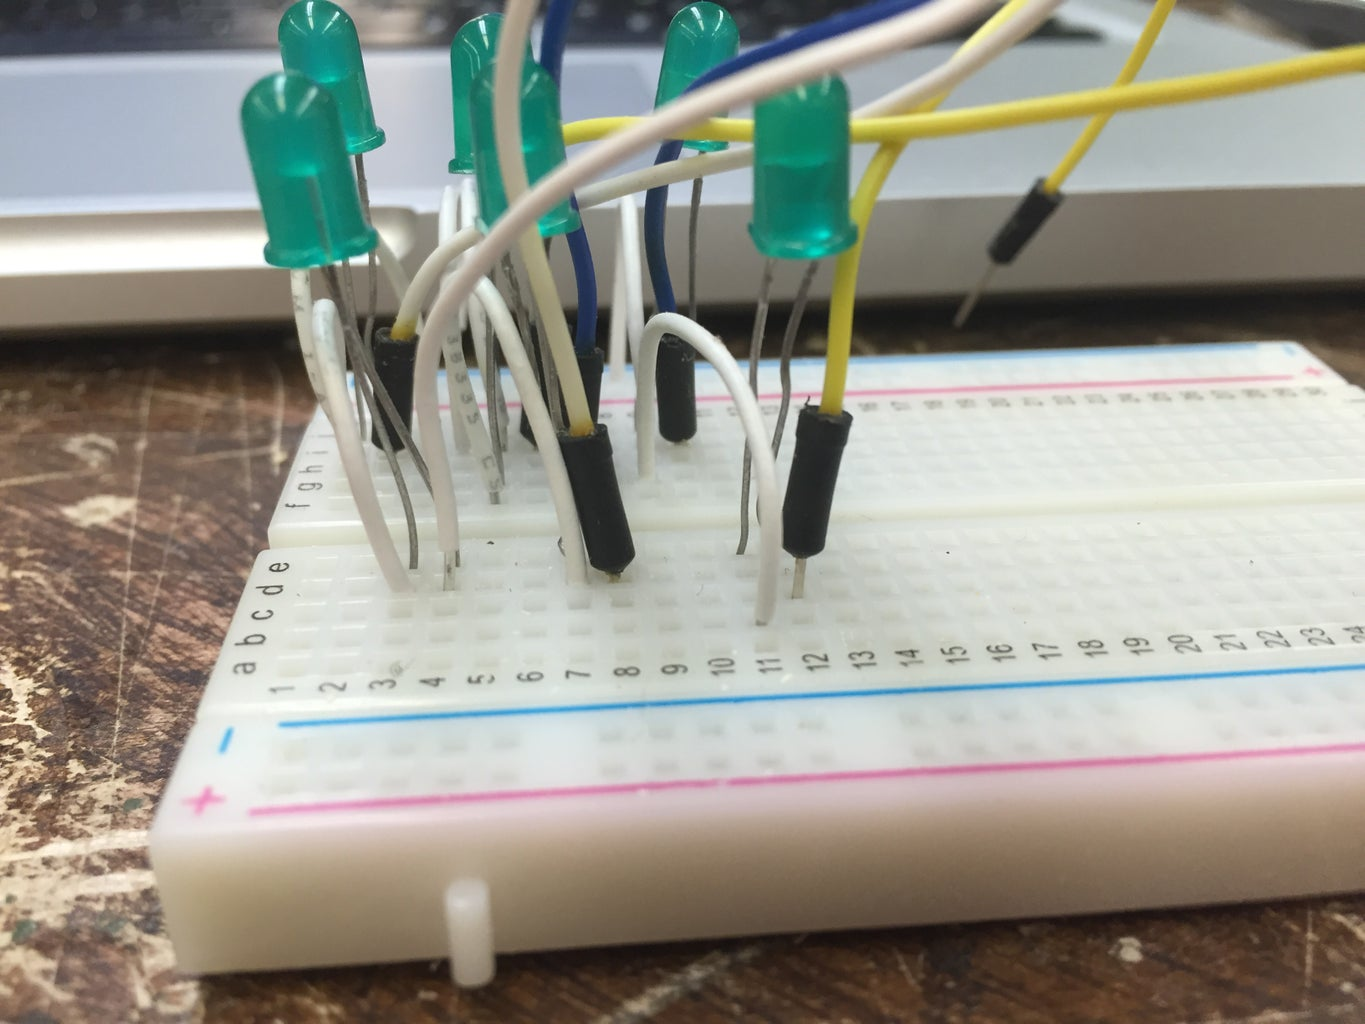 Hook Up the Wires That Will Connect to the Arduino